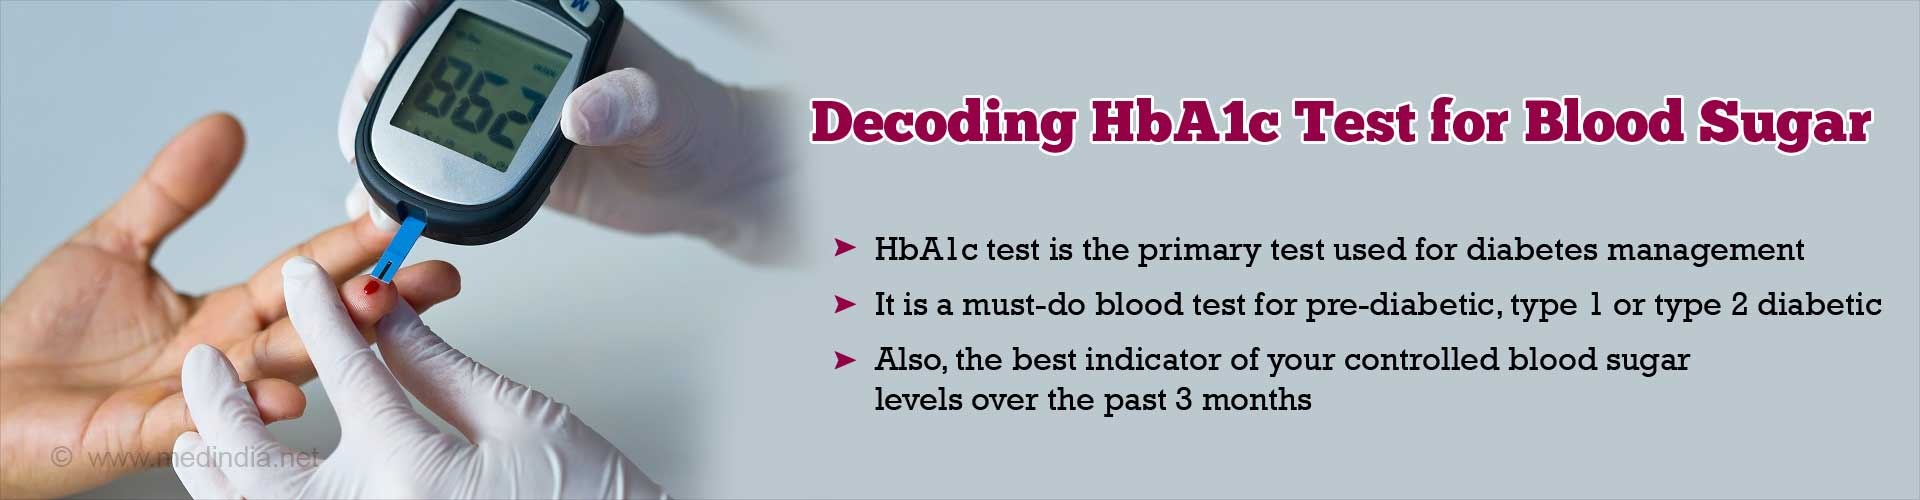 Decoding HbA1c Test for Blood Sugar